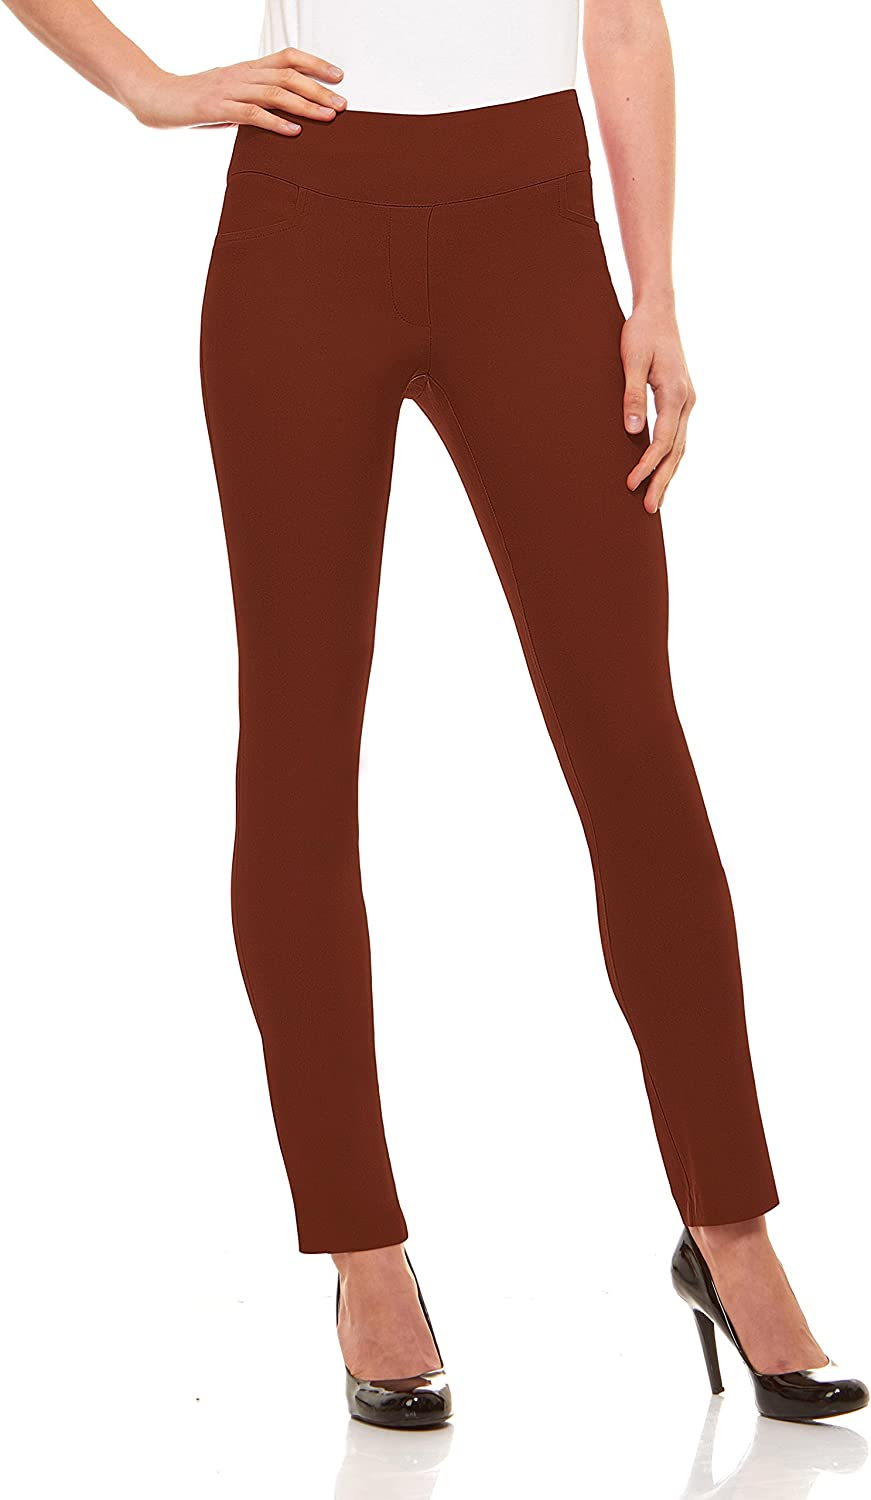 Velucci Womens Straight Leg Dress Pants  Stretch Slim Fit Pull On Style